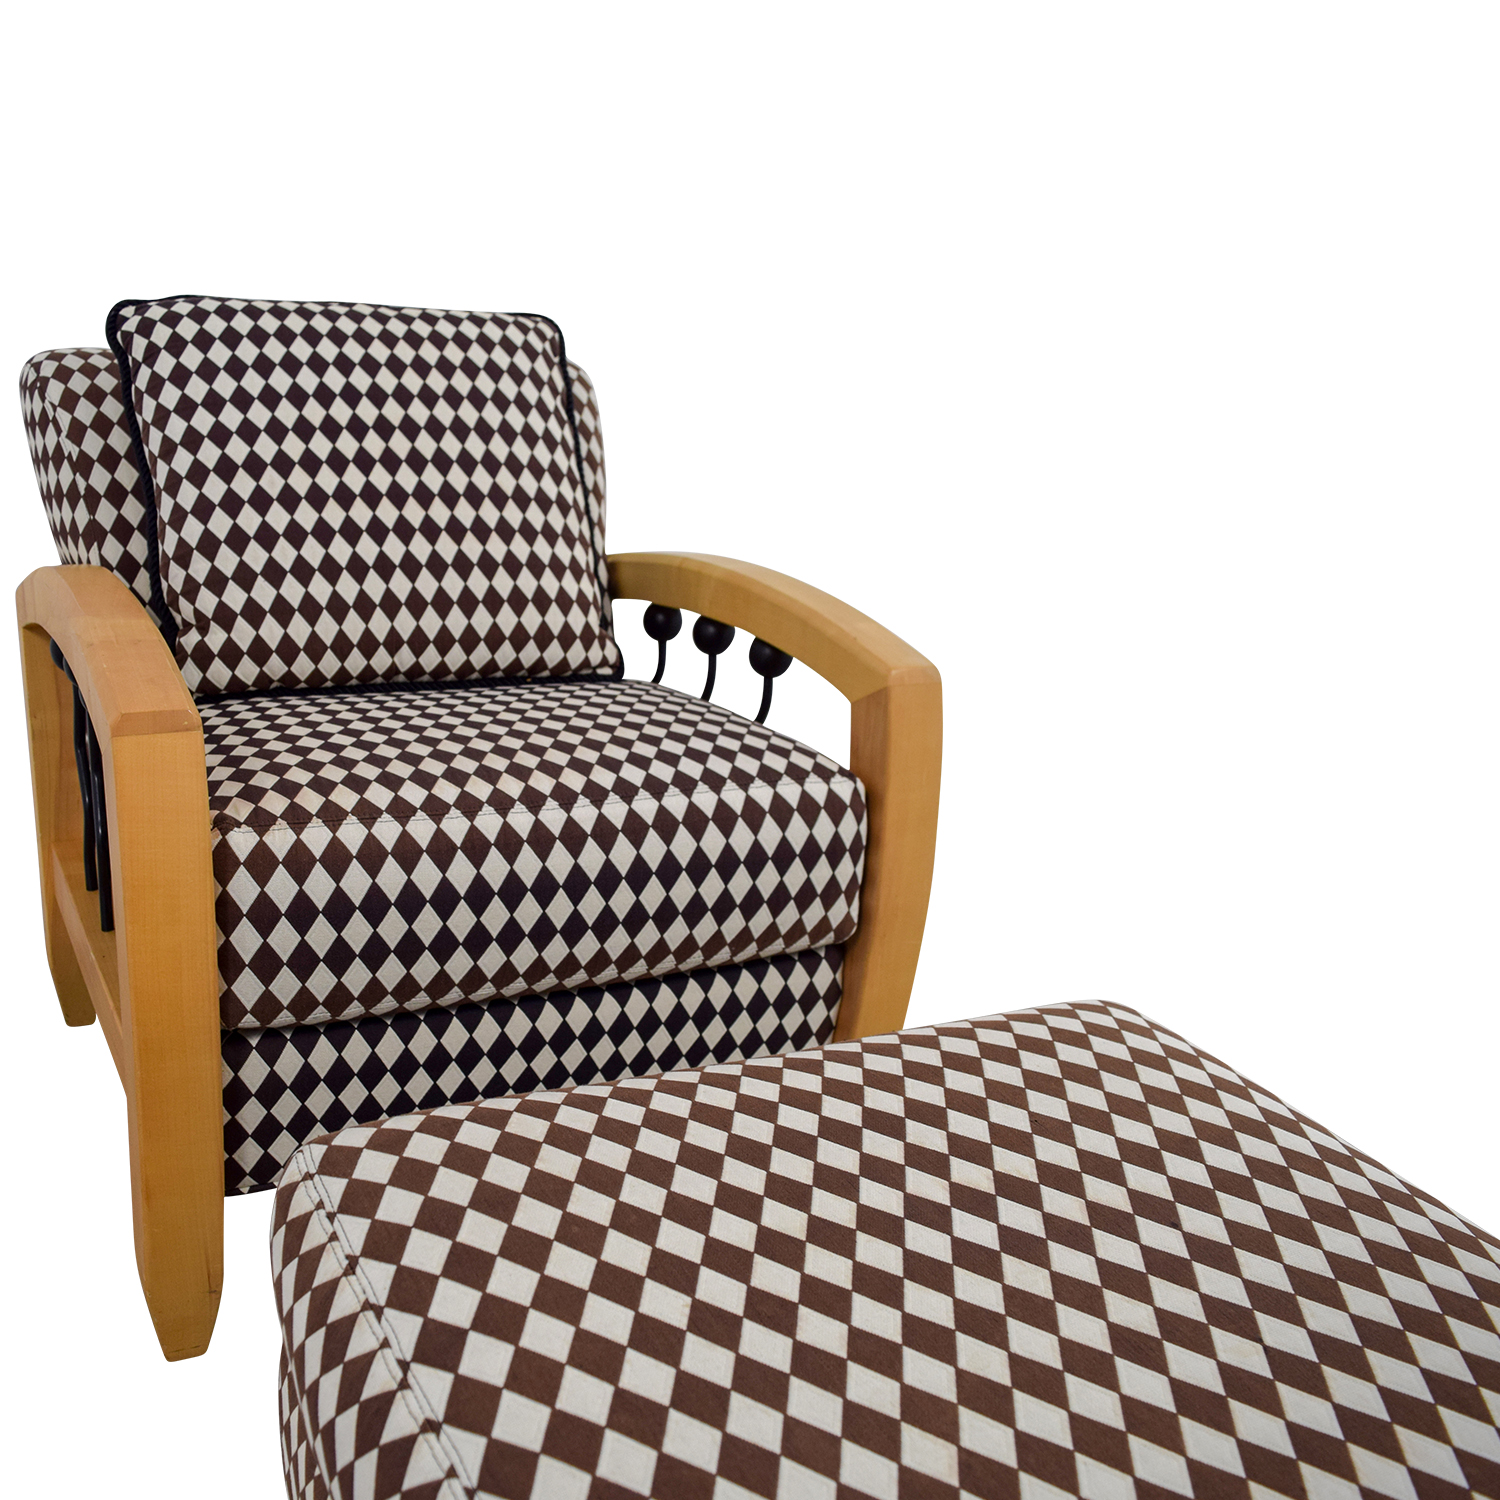 Peachy 73 Off Thayer Coggin Thayer Coggin Cherry Wood Black And White Checkered Accent Chair With Ottoman Chairs Theyellowbook Wood Chair Design Ideas Theyellowbookinfo